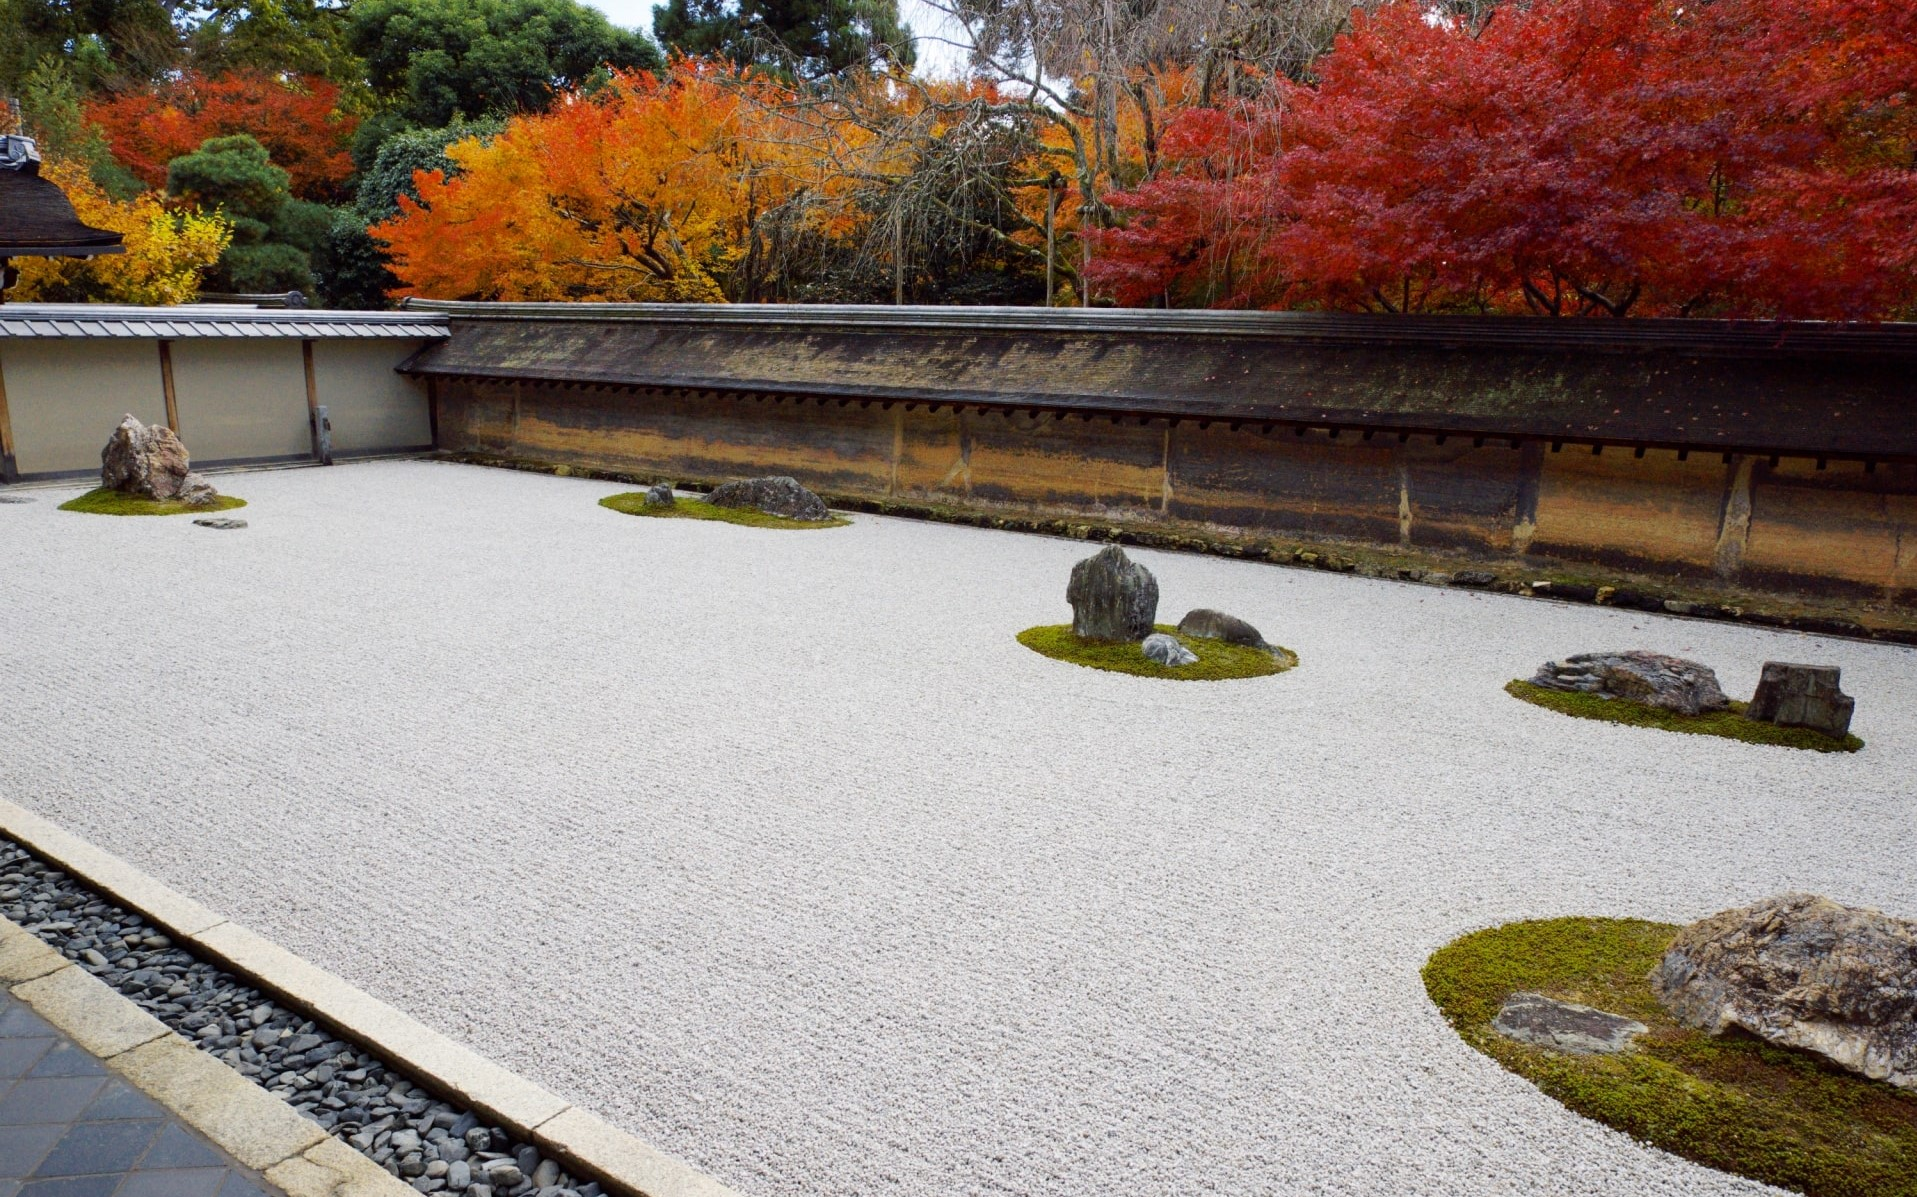 A rock garden at Ryoanji Temple